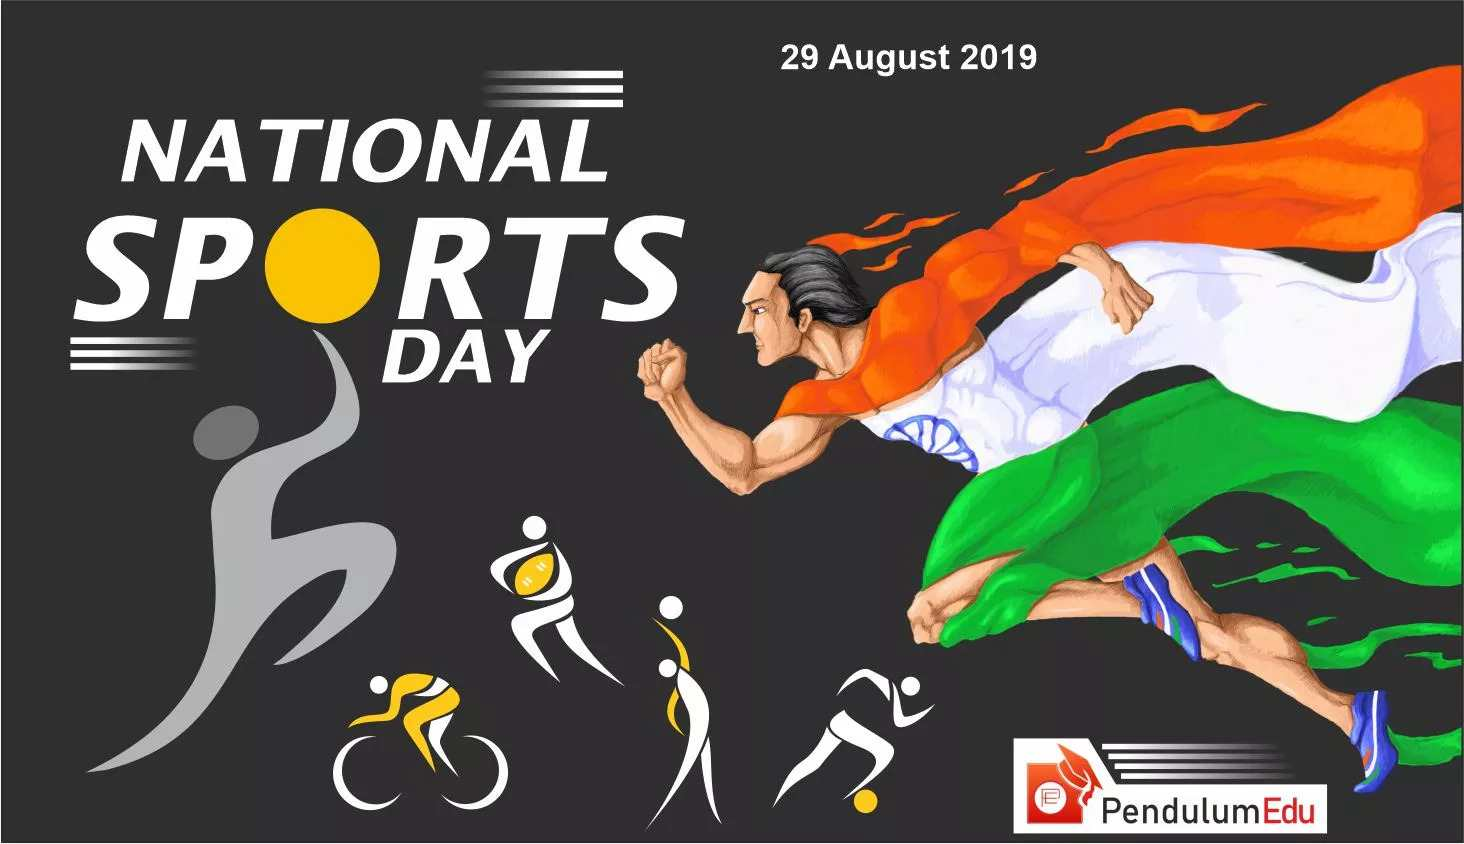 National Sports Day 29 August 2019